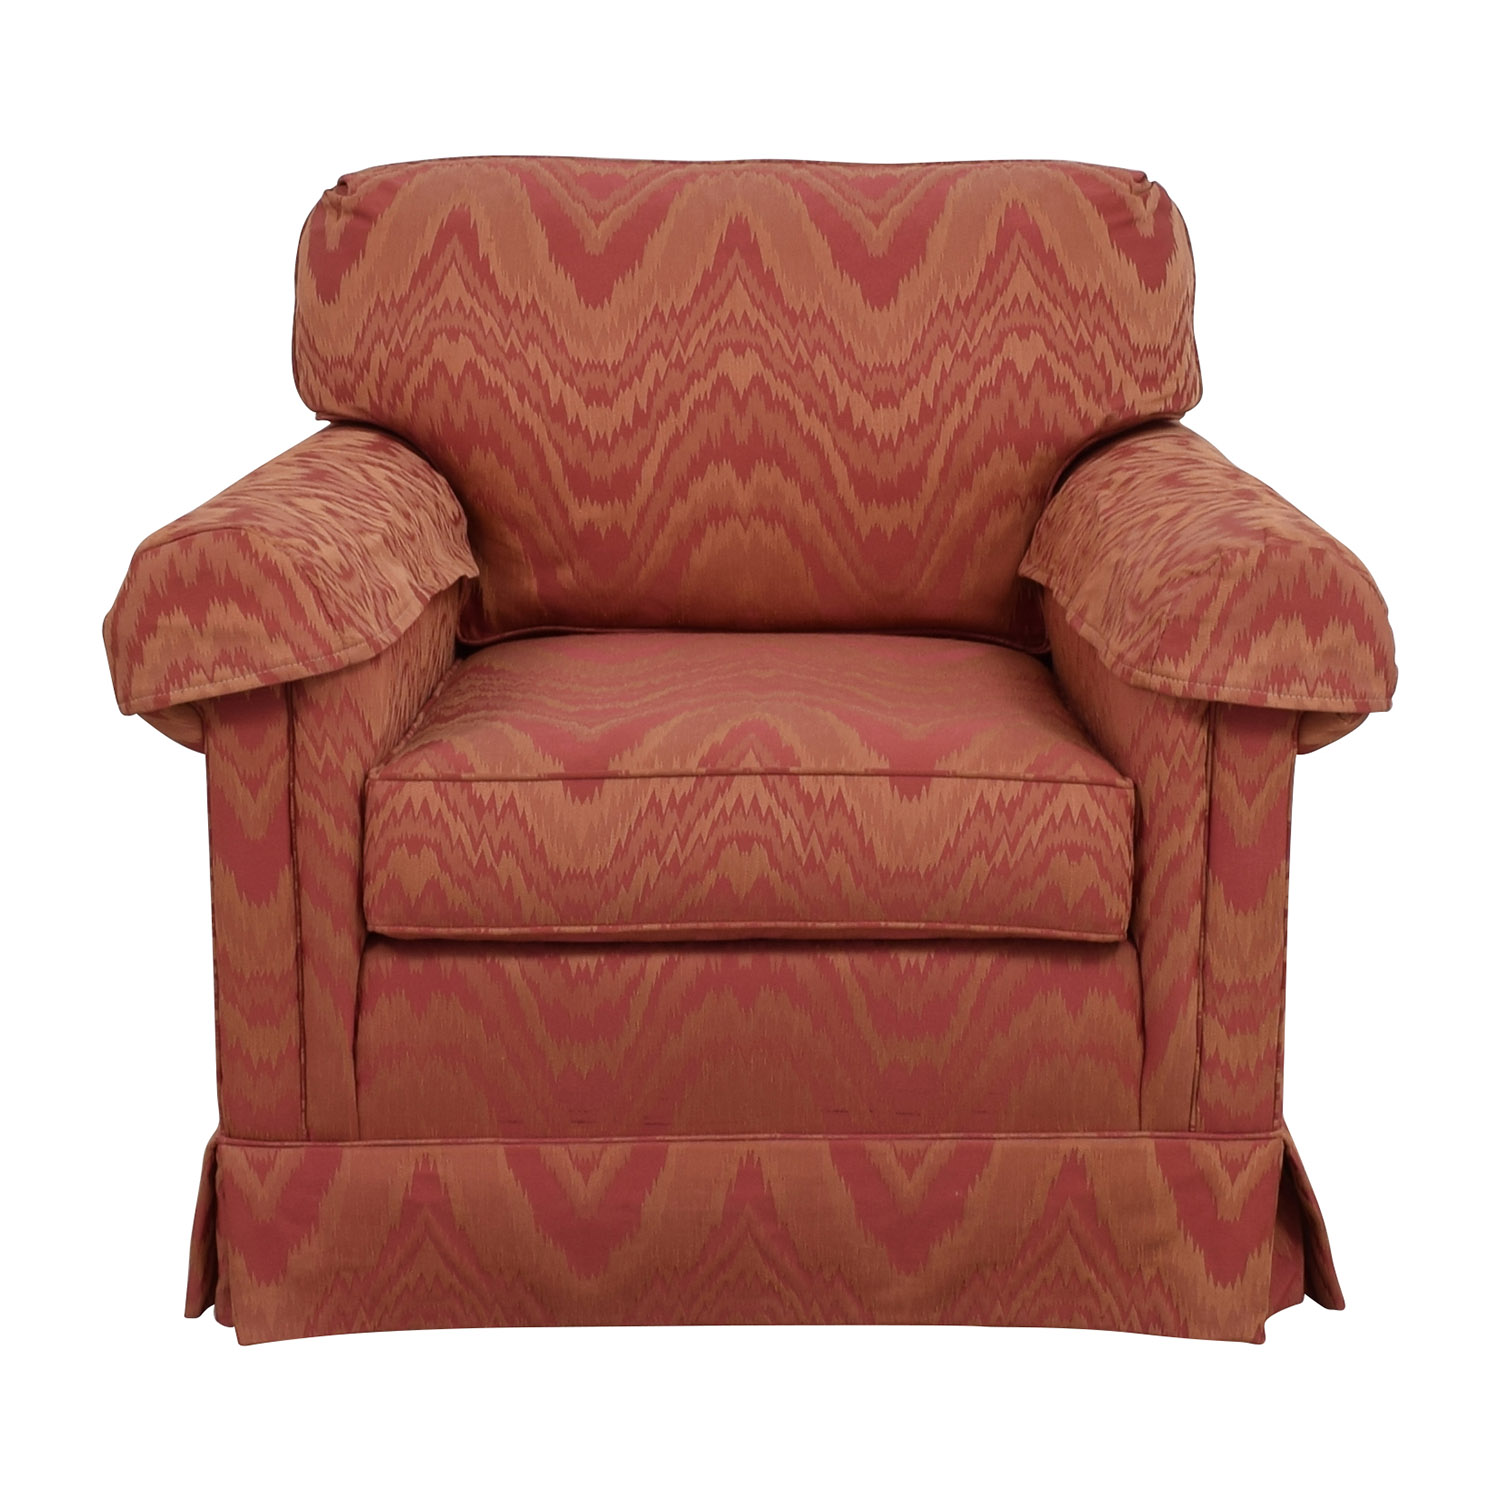 Sherrill Sherrill Orange and Red Patterned Accent Chair used